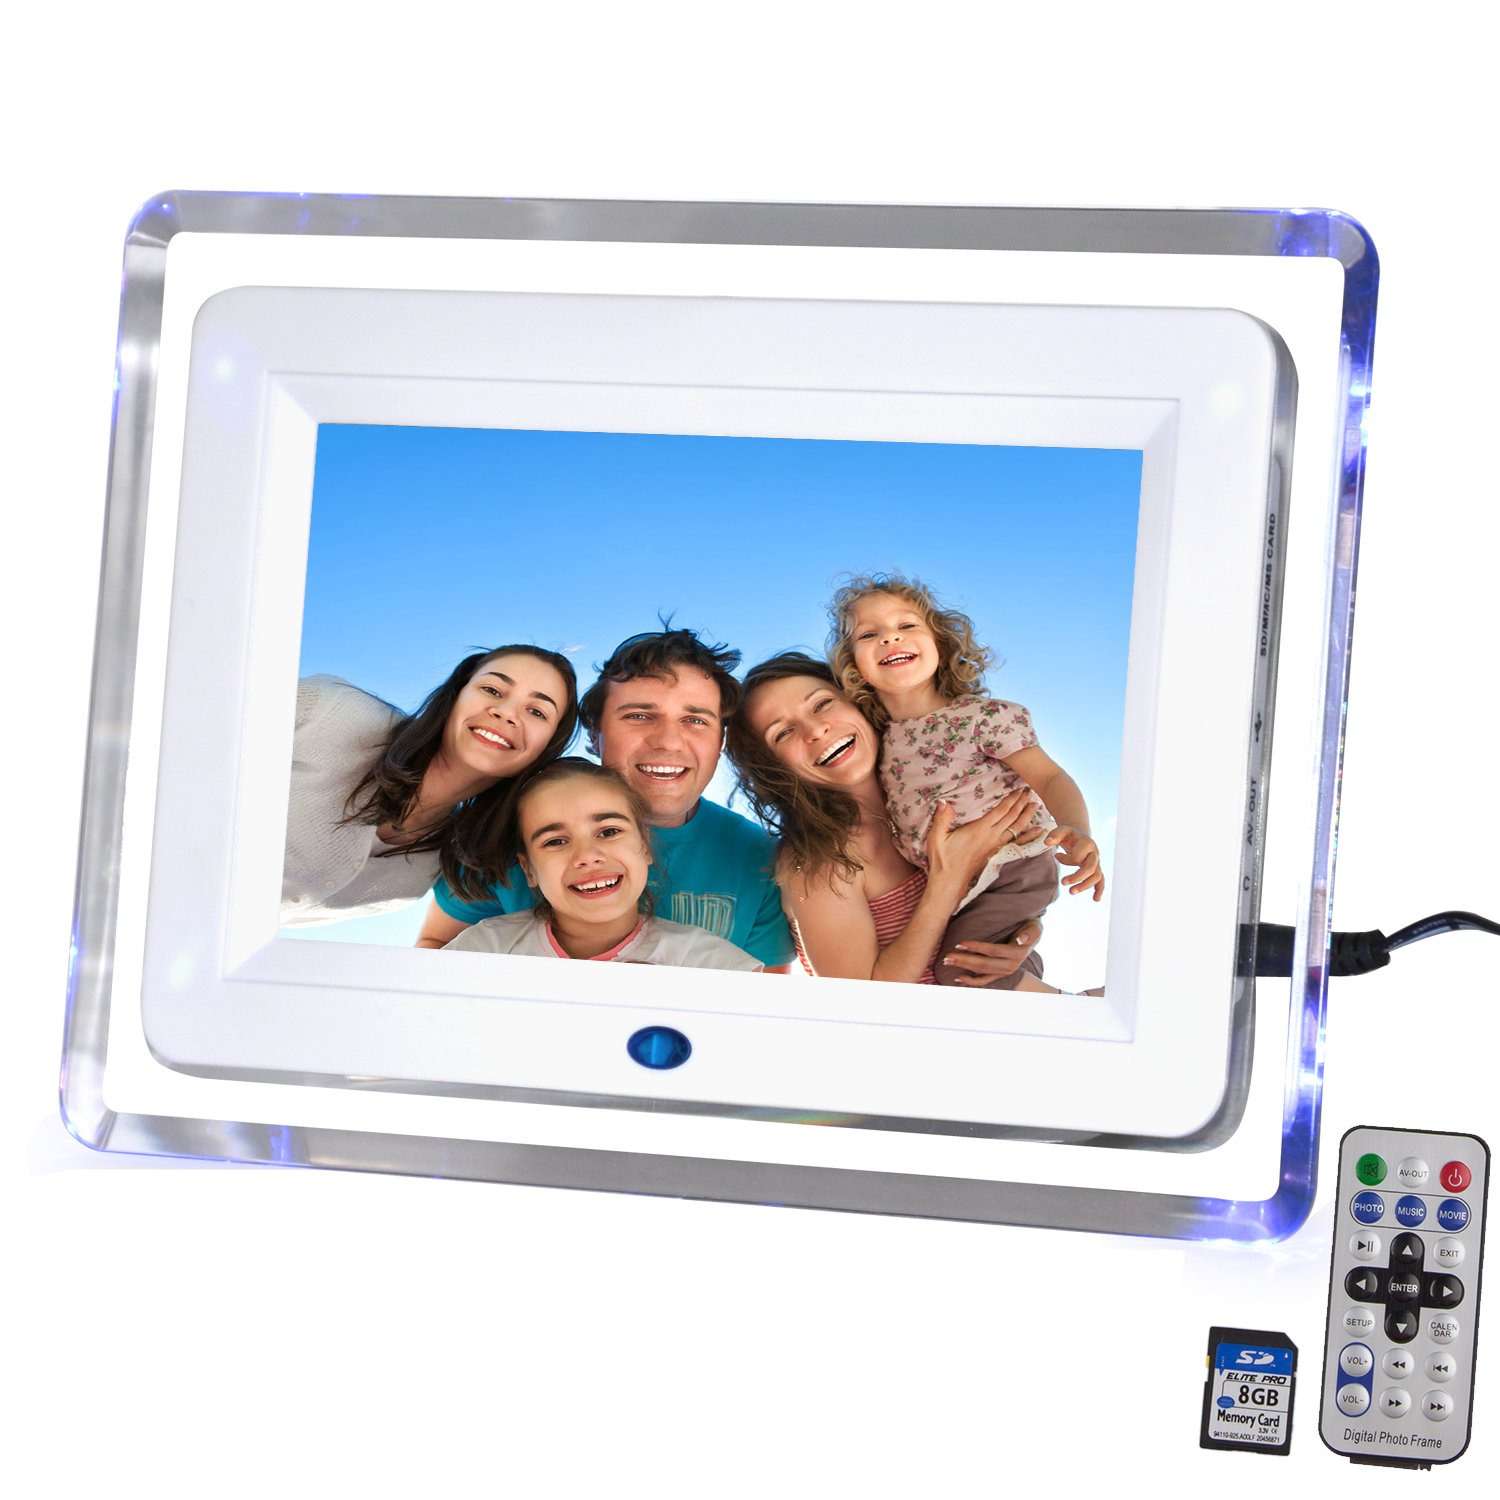 Top 10 Best Digital Photo Frames Buying Guide 2019-2020 on